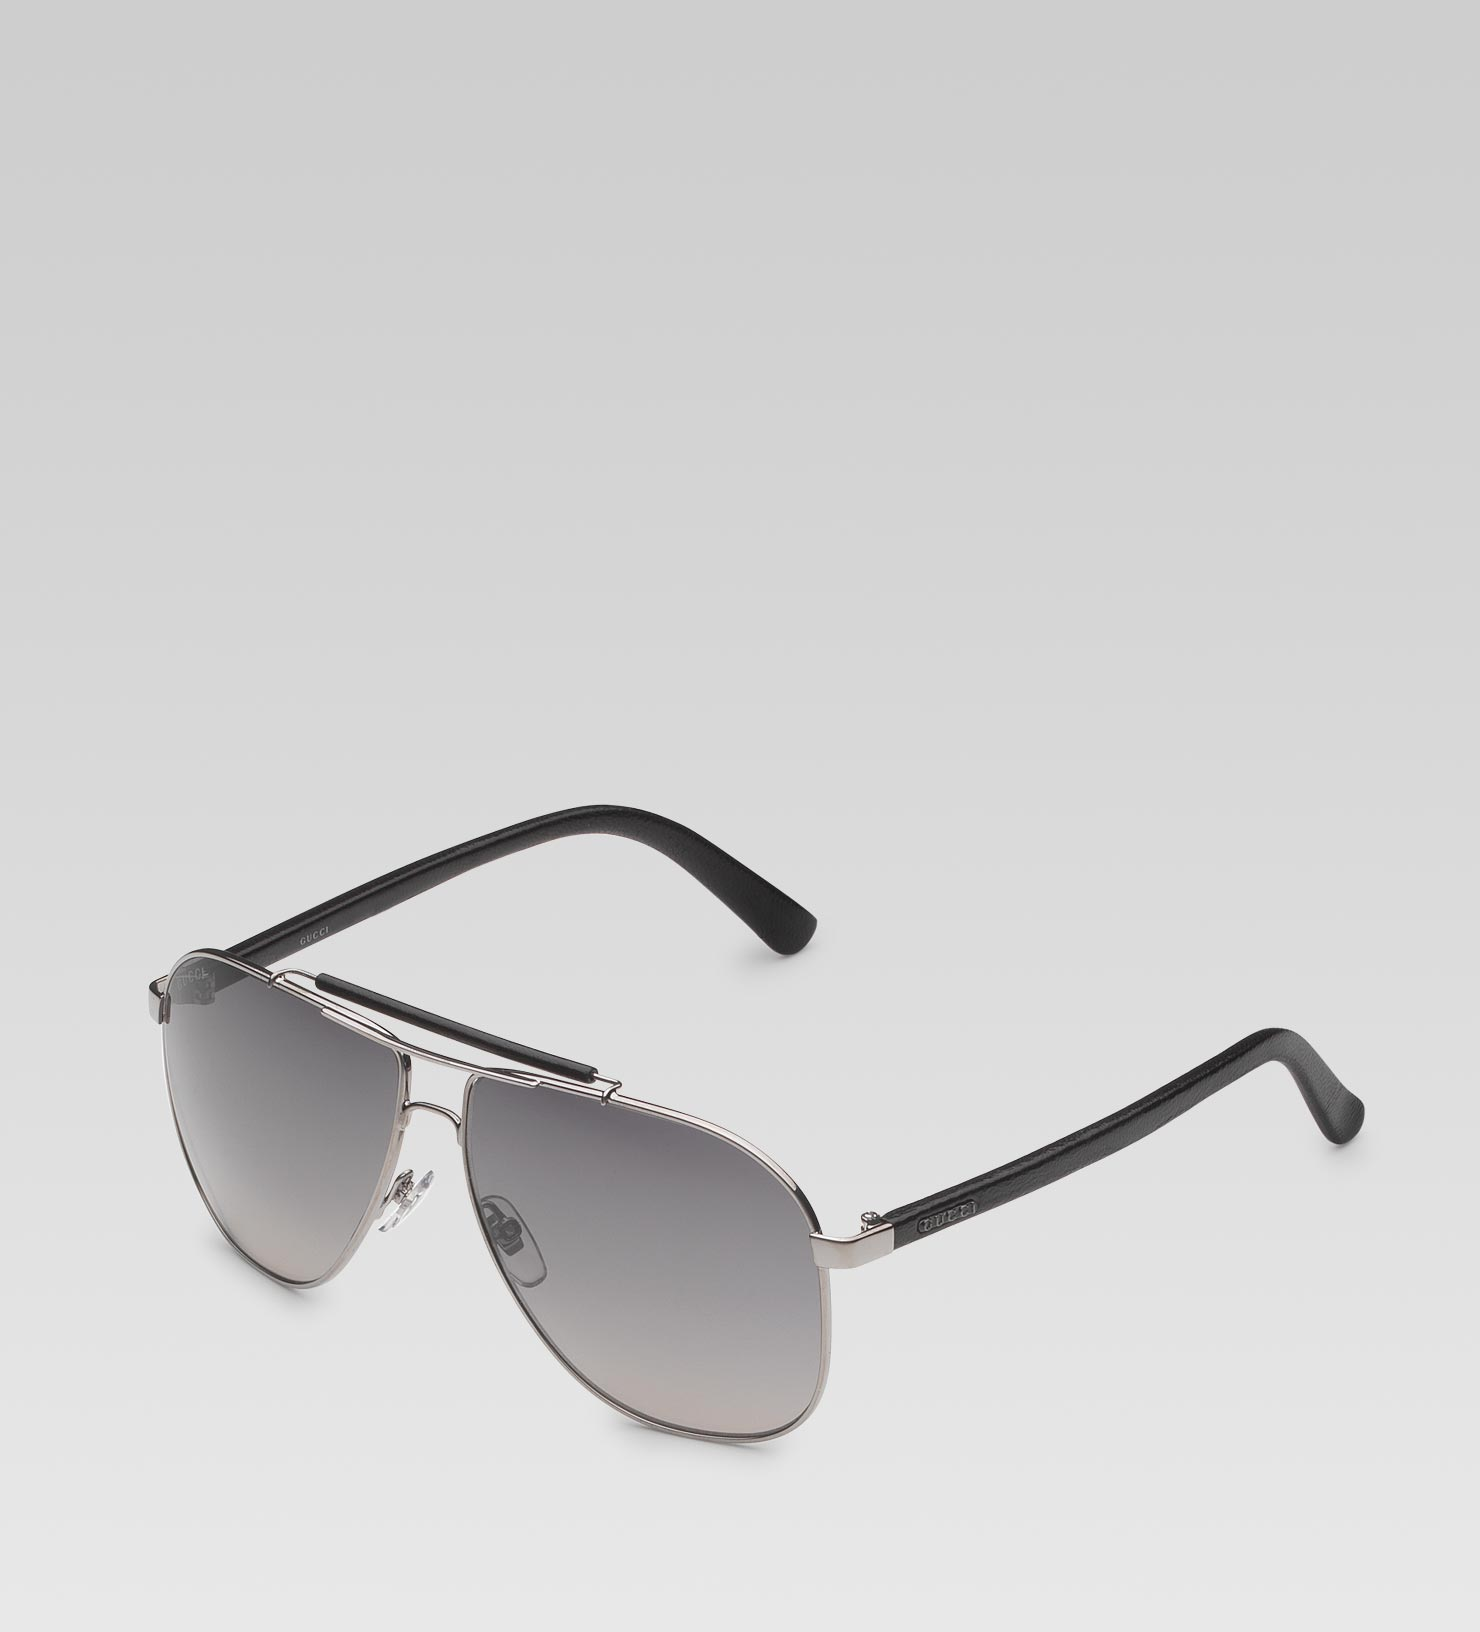 84735fac31 Gucci Aviator Sunglasses with Leather Brow Bar and Temples with ...